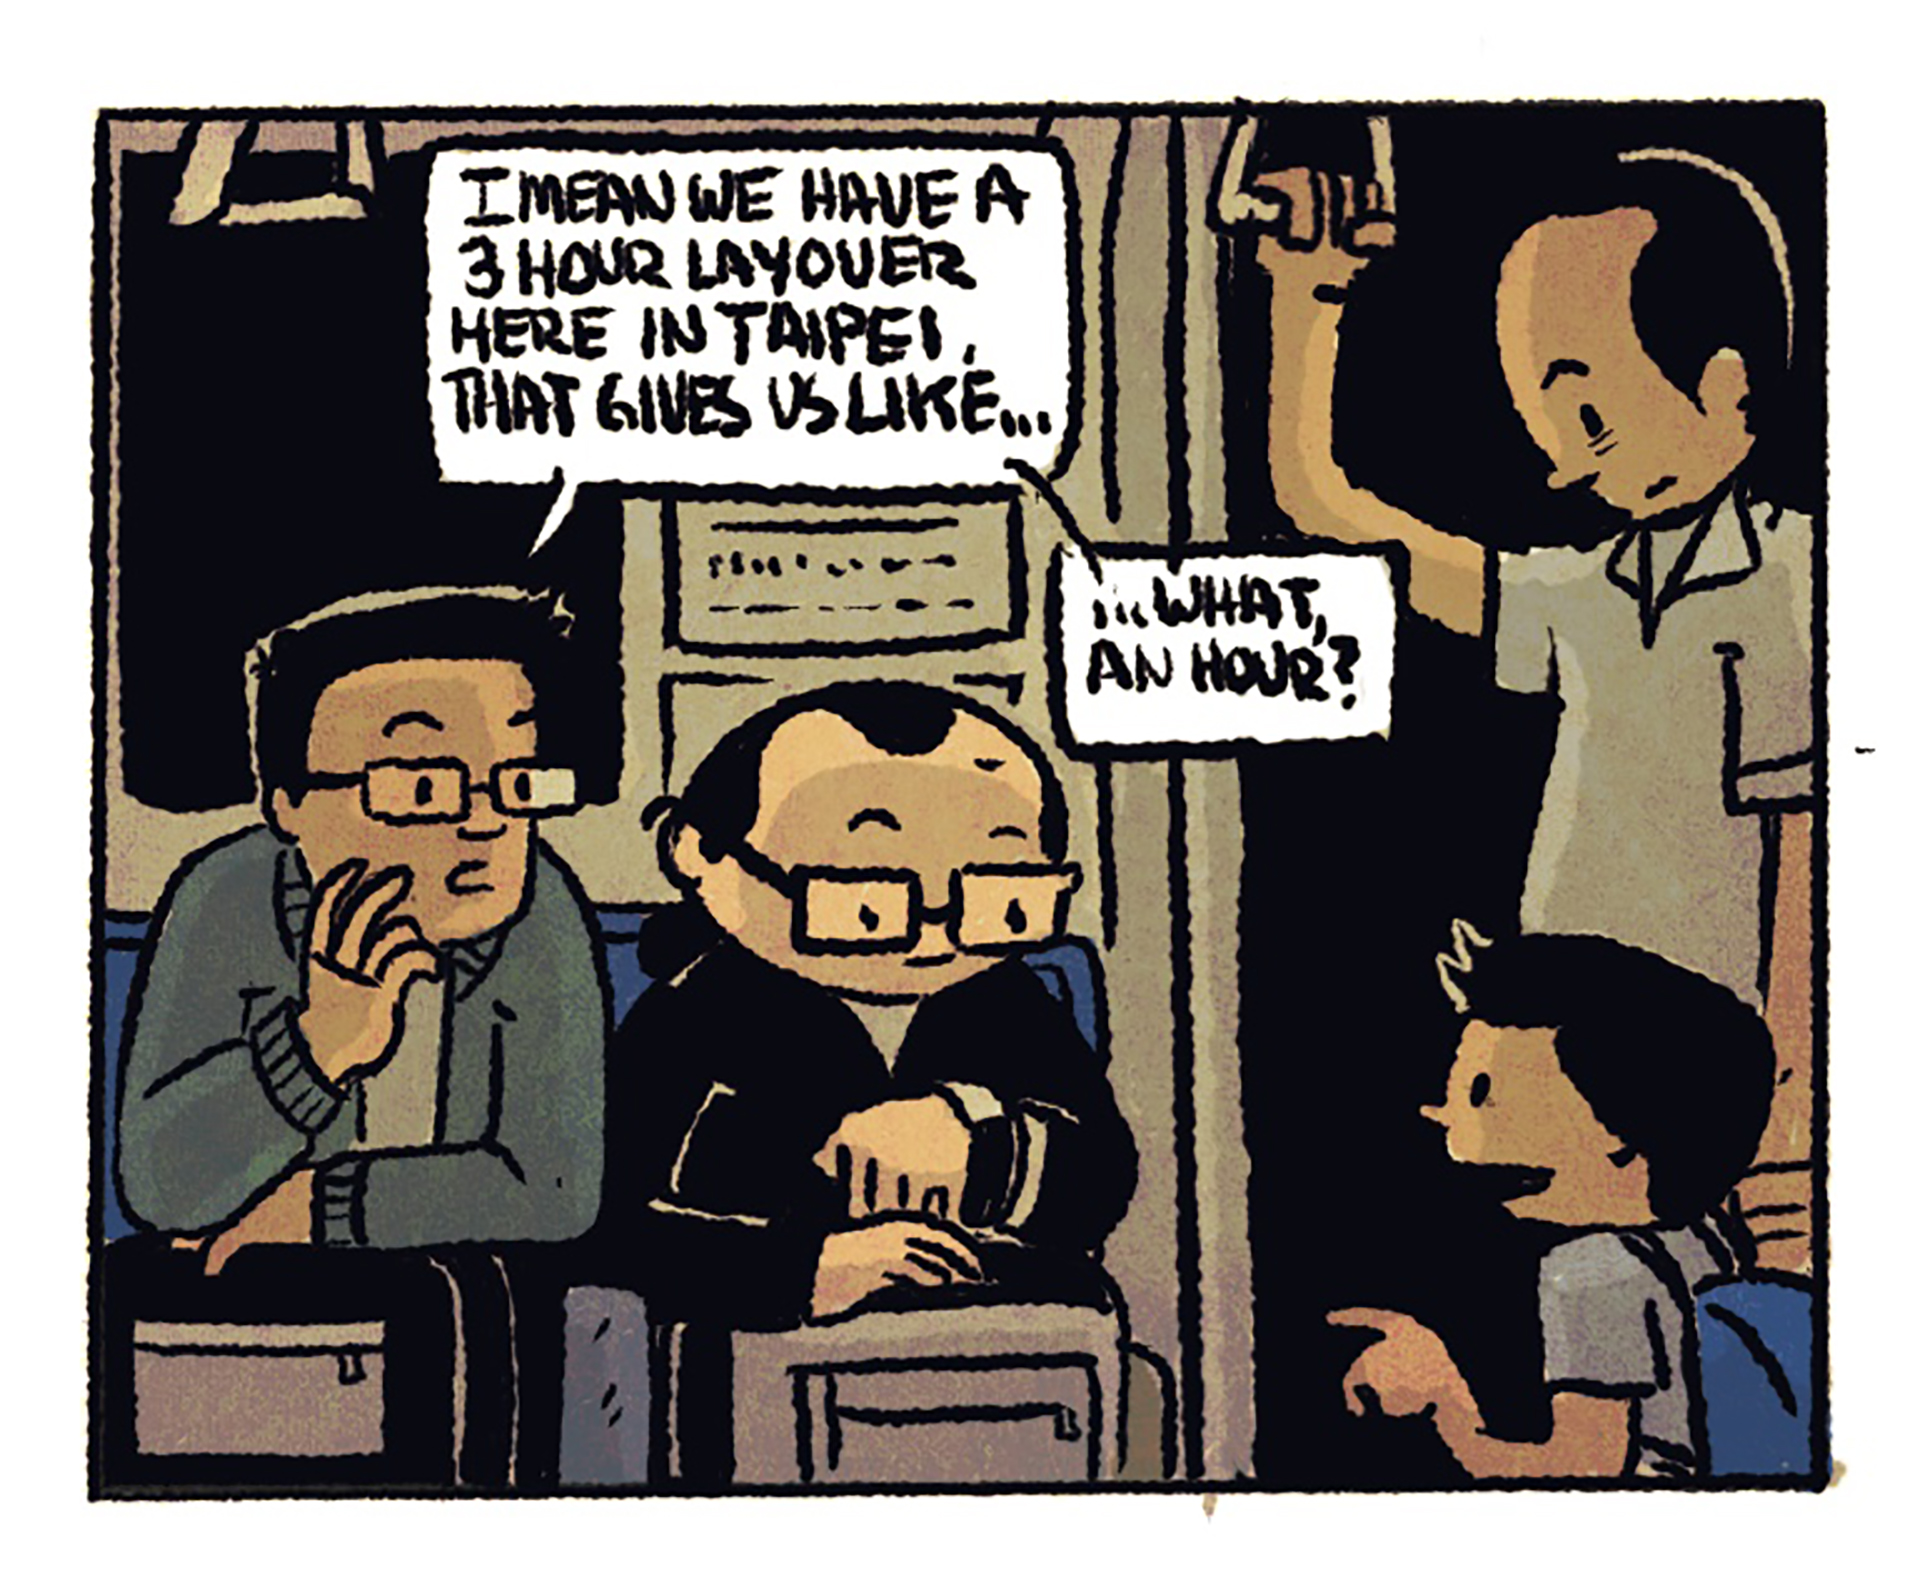 """The two protagonists are seated in a train car; one of them checks his watch. 1st speech bubble: """"I mean we have a 3 hour layover here in Taipei. That gives us like..."""" 2nd speech bubble: """"...what, an hour?"""""""